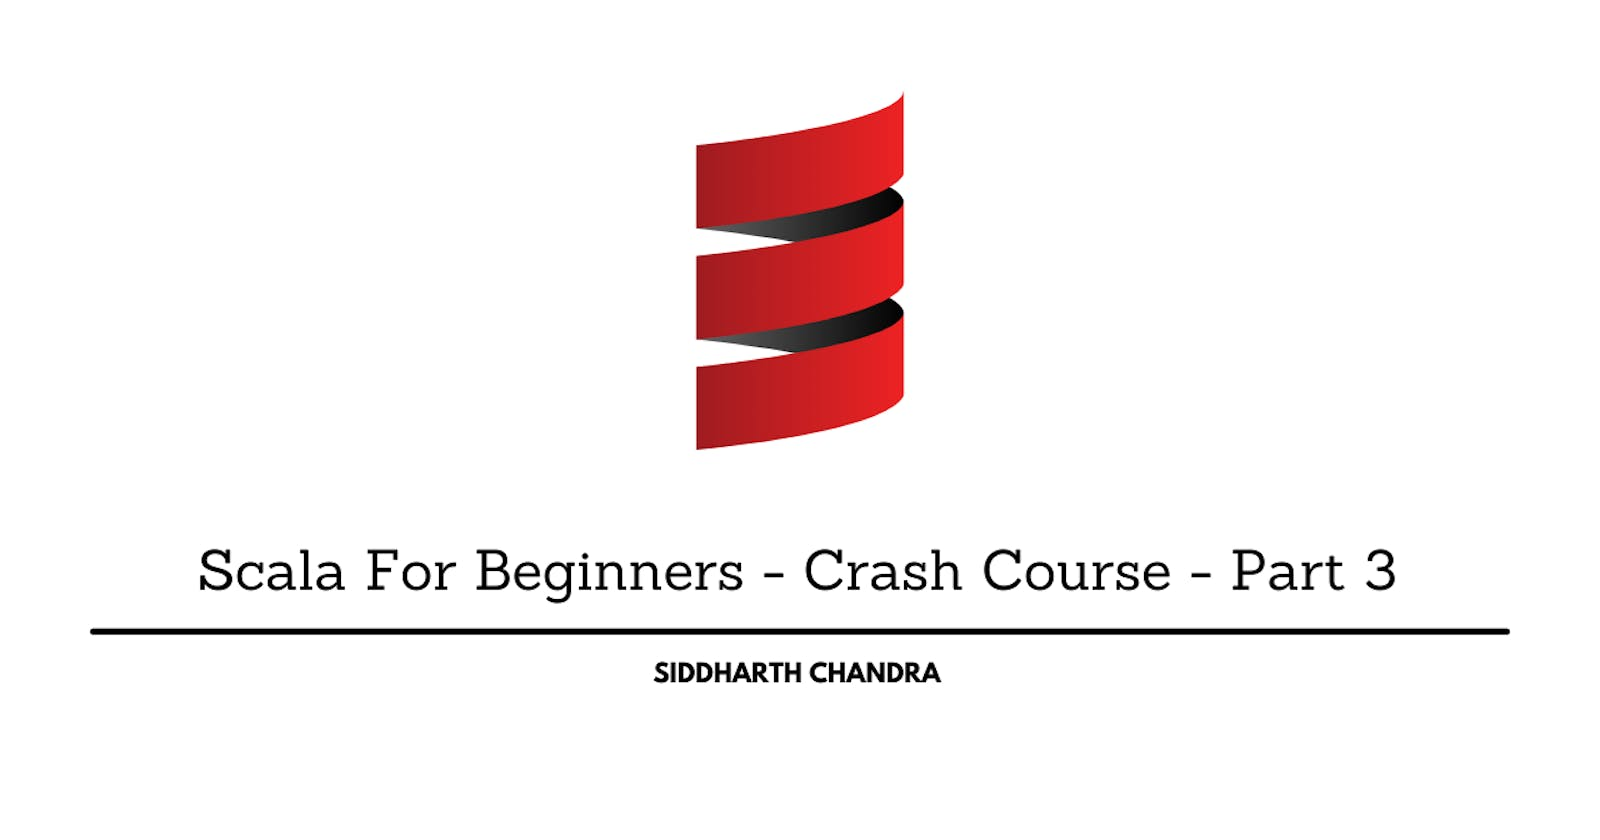 Scala For Beginners - Crash Course - Part 3